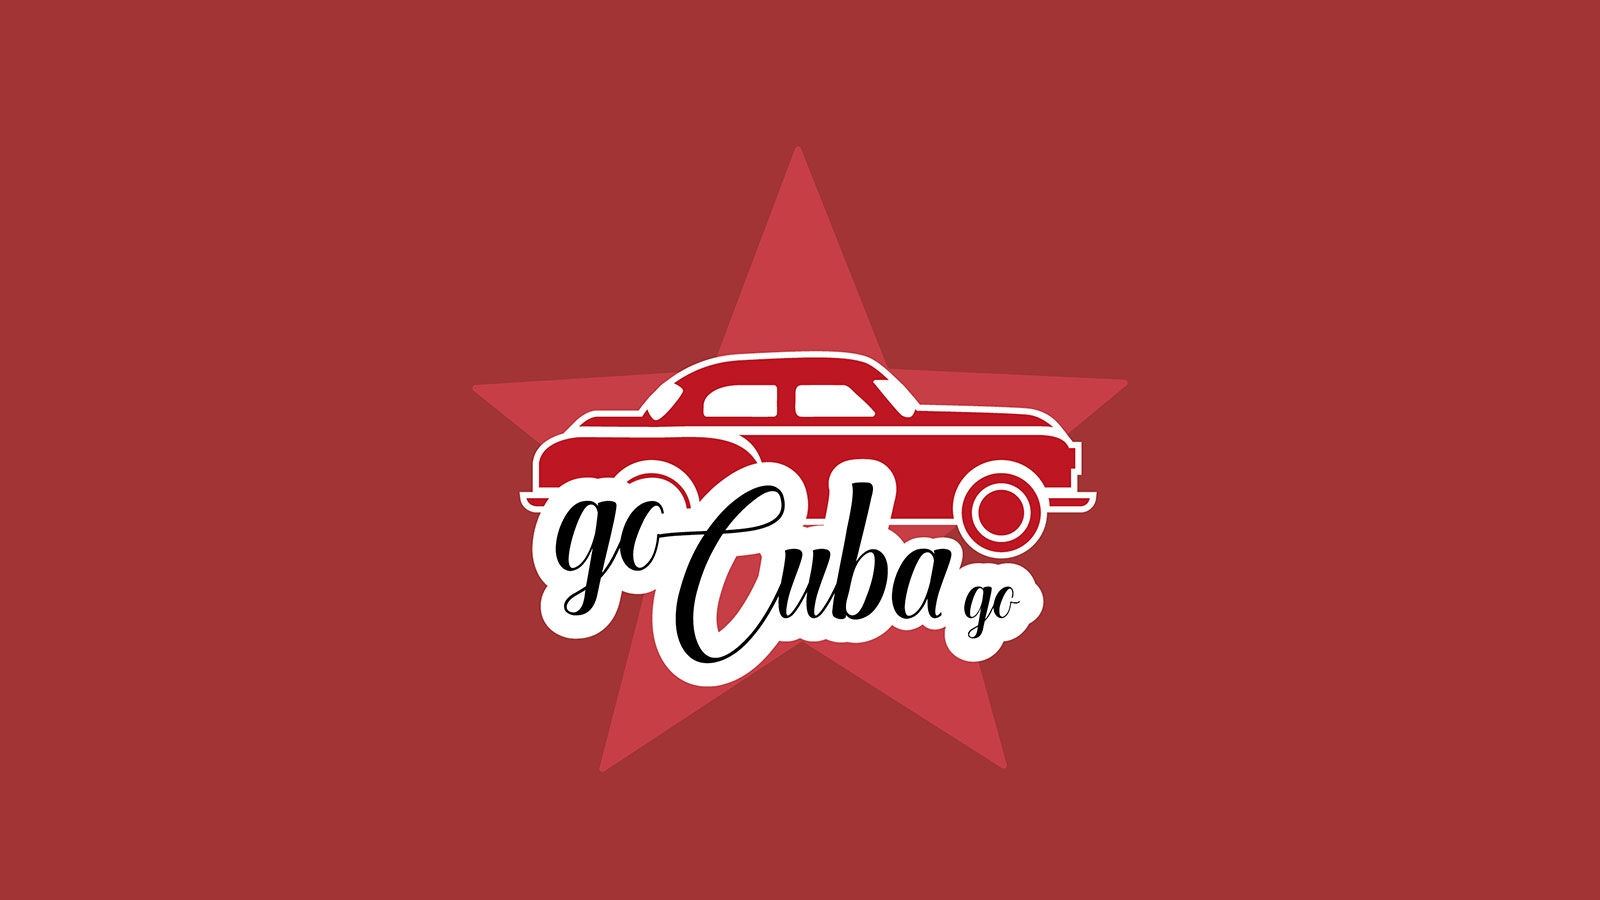 Go Cuba Go | gocubago.com | 2018 (Logo No 04) © echonet communication GmbH